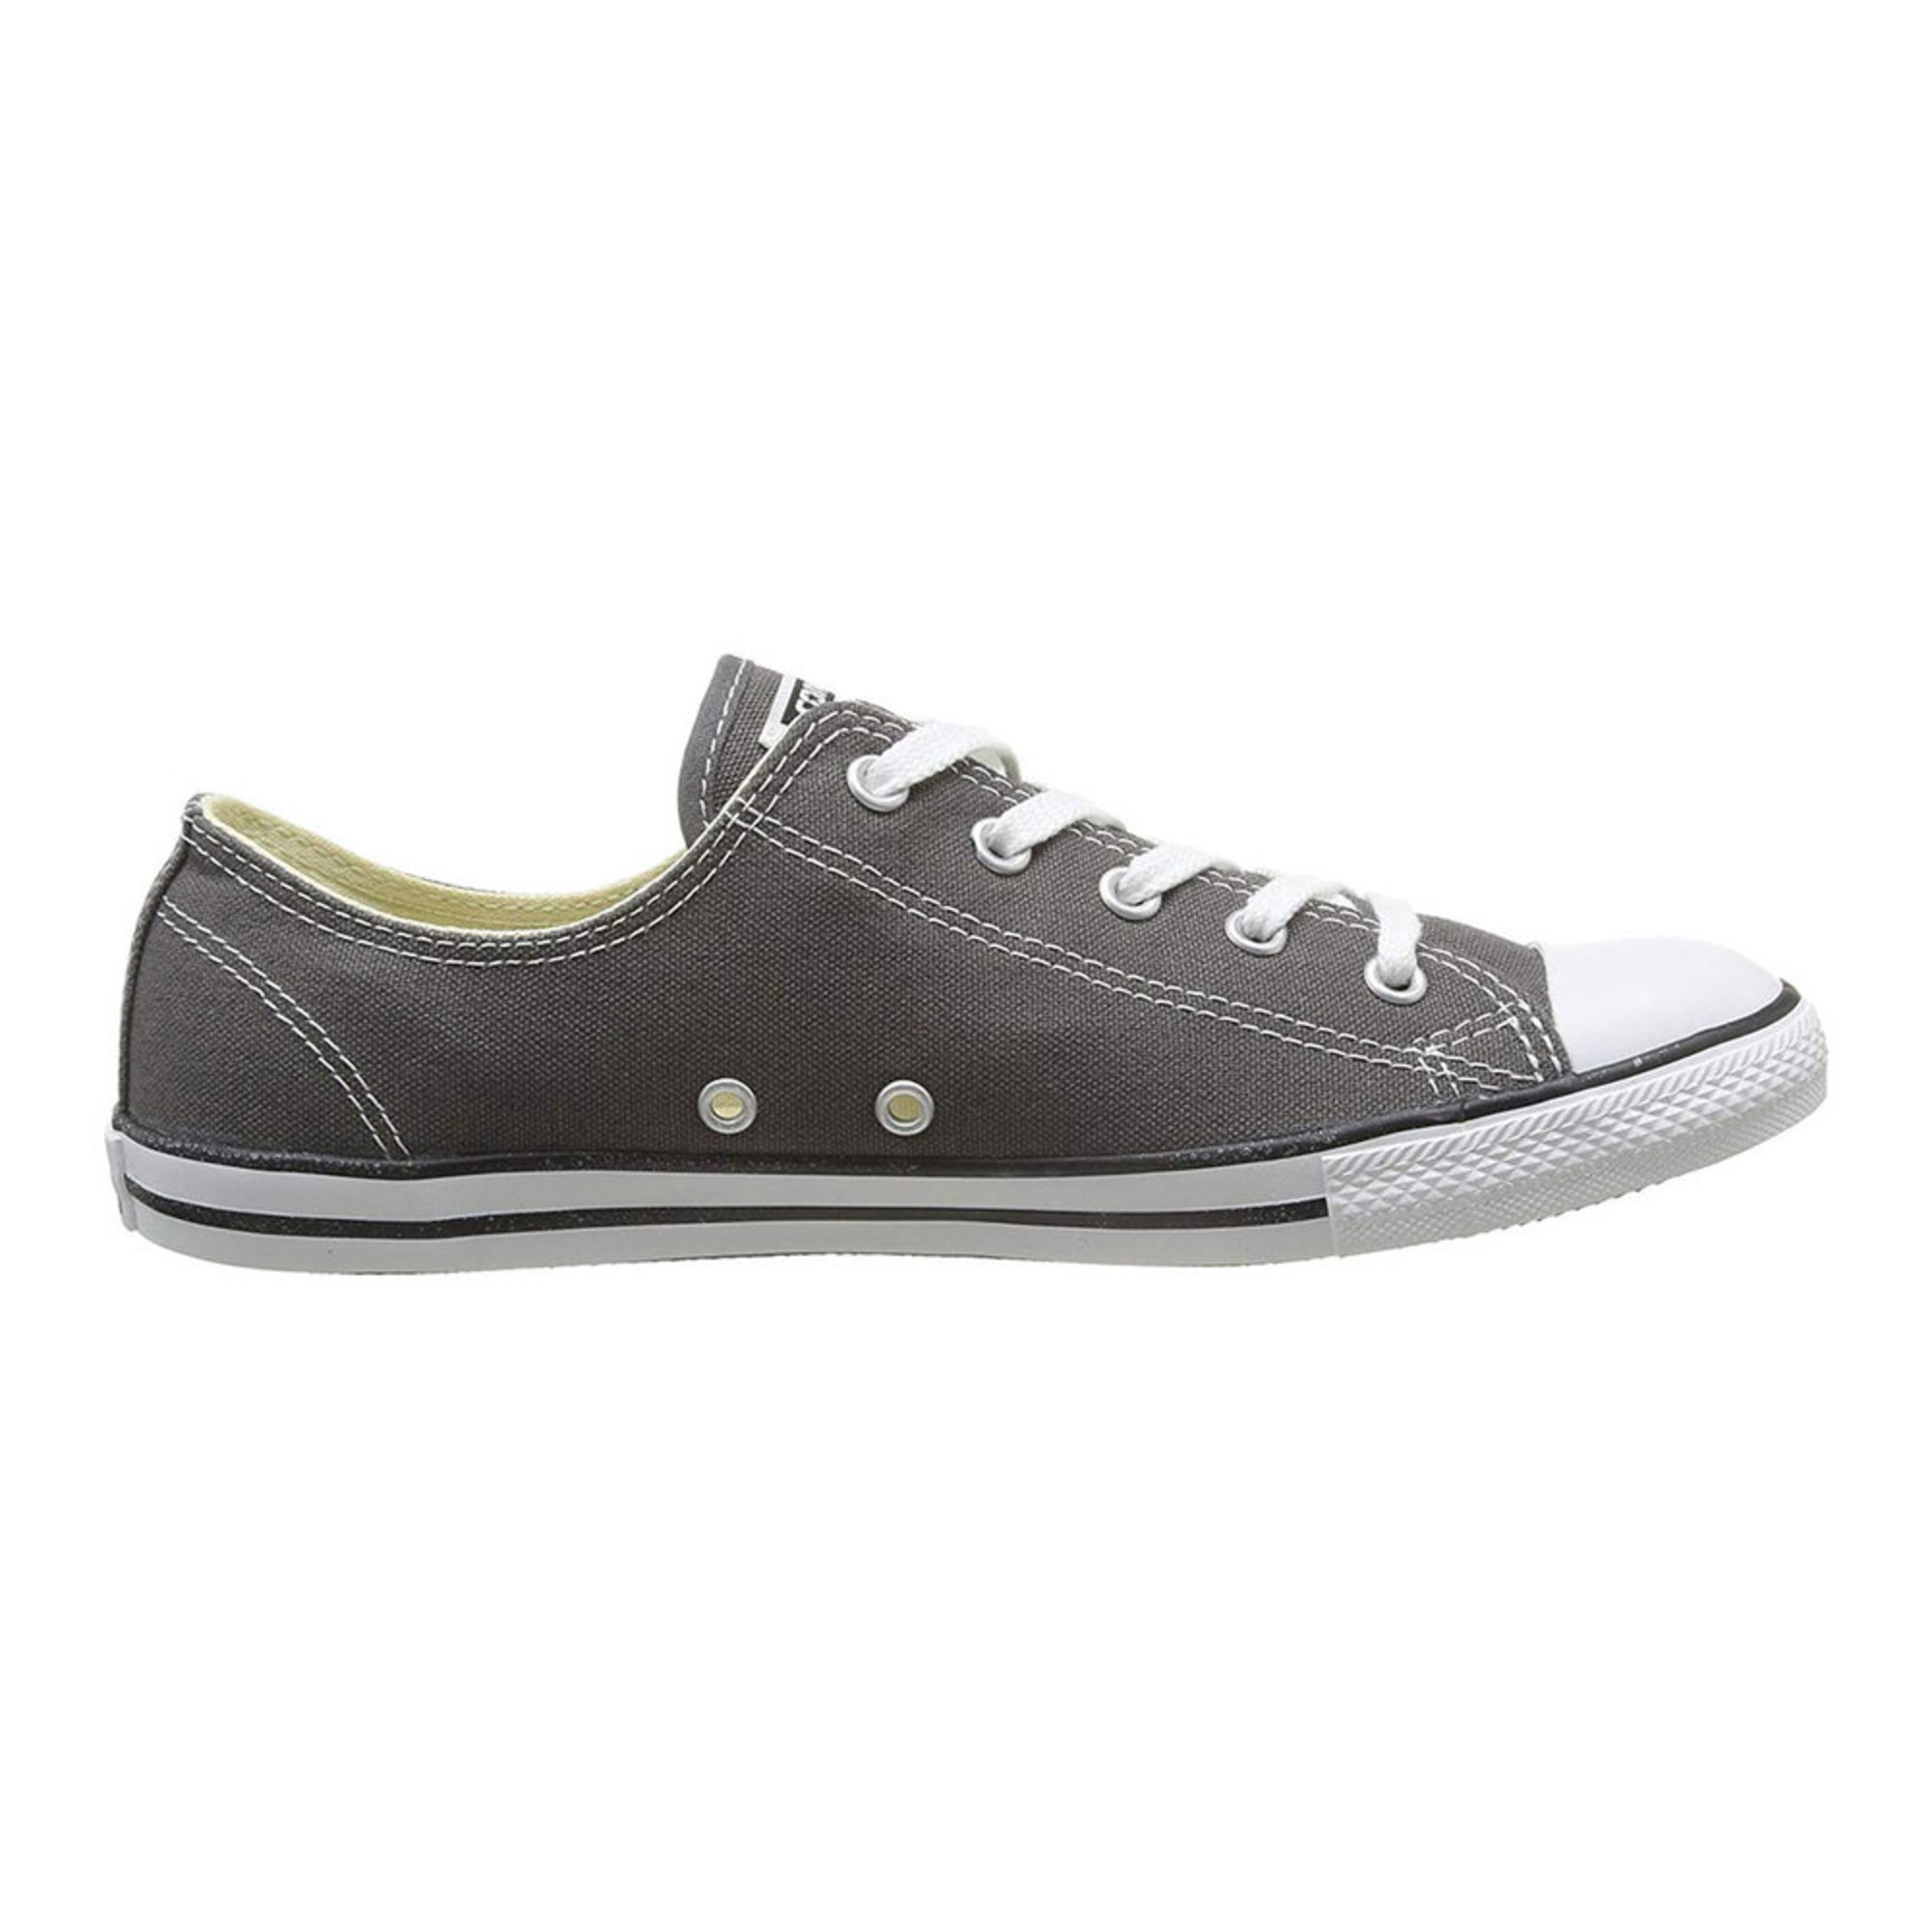 3583d1798517 Converse Women s Chuck Taylor All Star Dainty Oxford Sneaker ...